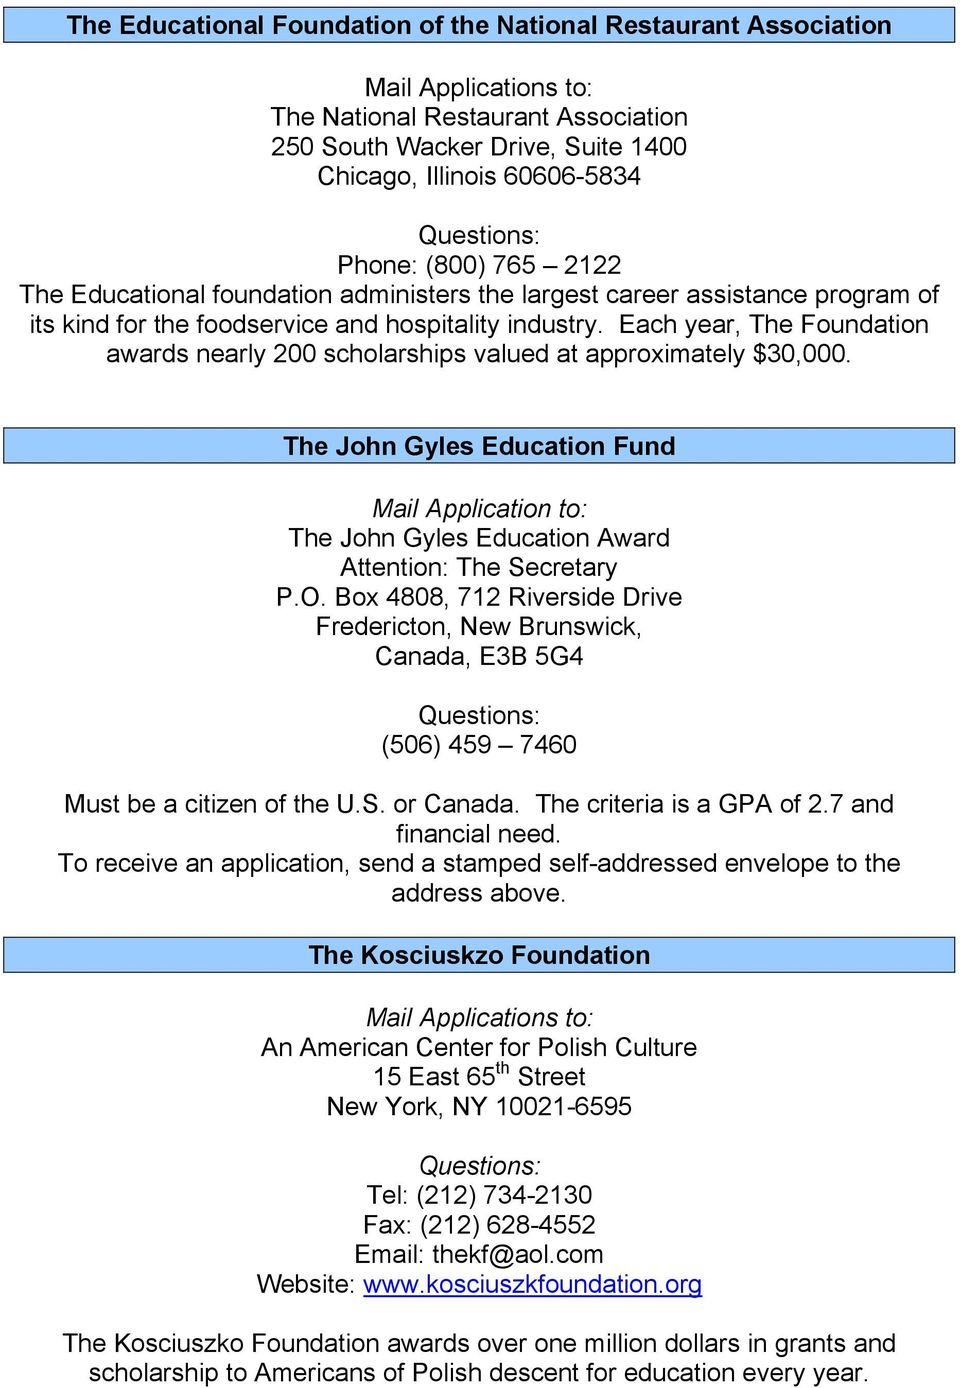 Each year, The Foundation awards nearly 200 scholarships valued at approximately $30,000. The John Gyles Education Fund Mail Application to: The John Gyles Education Award Attention: The Secretary P.